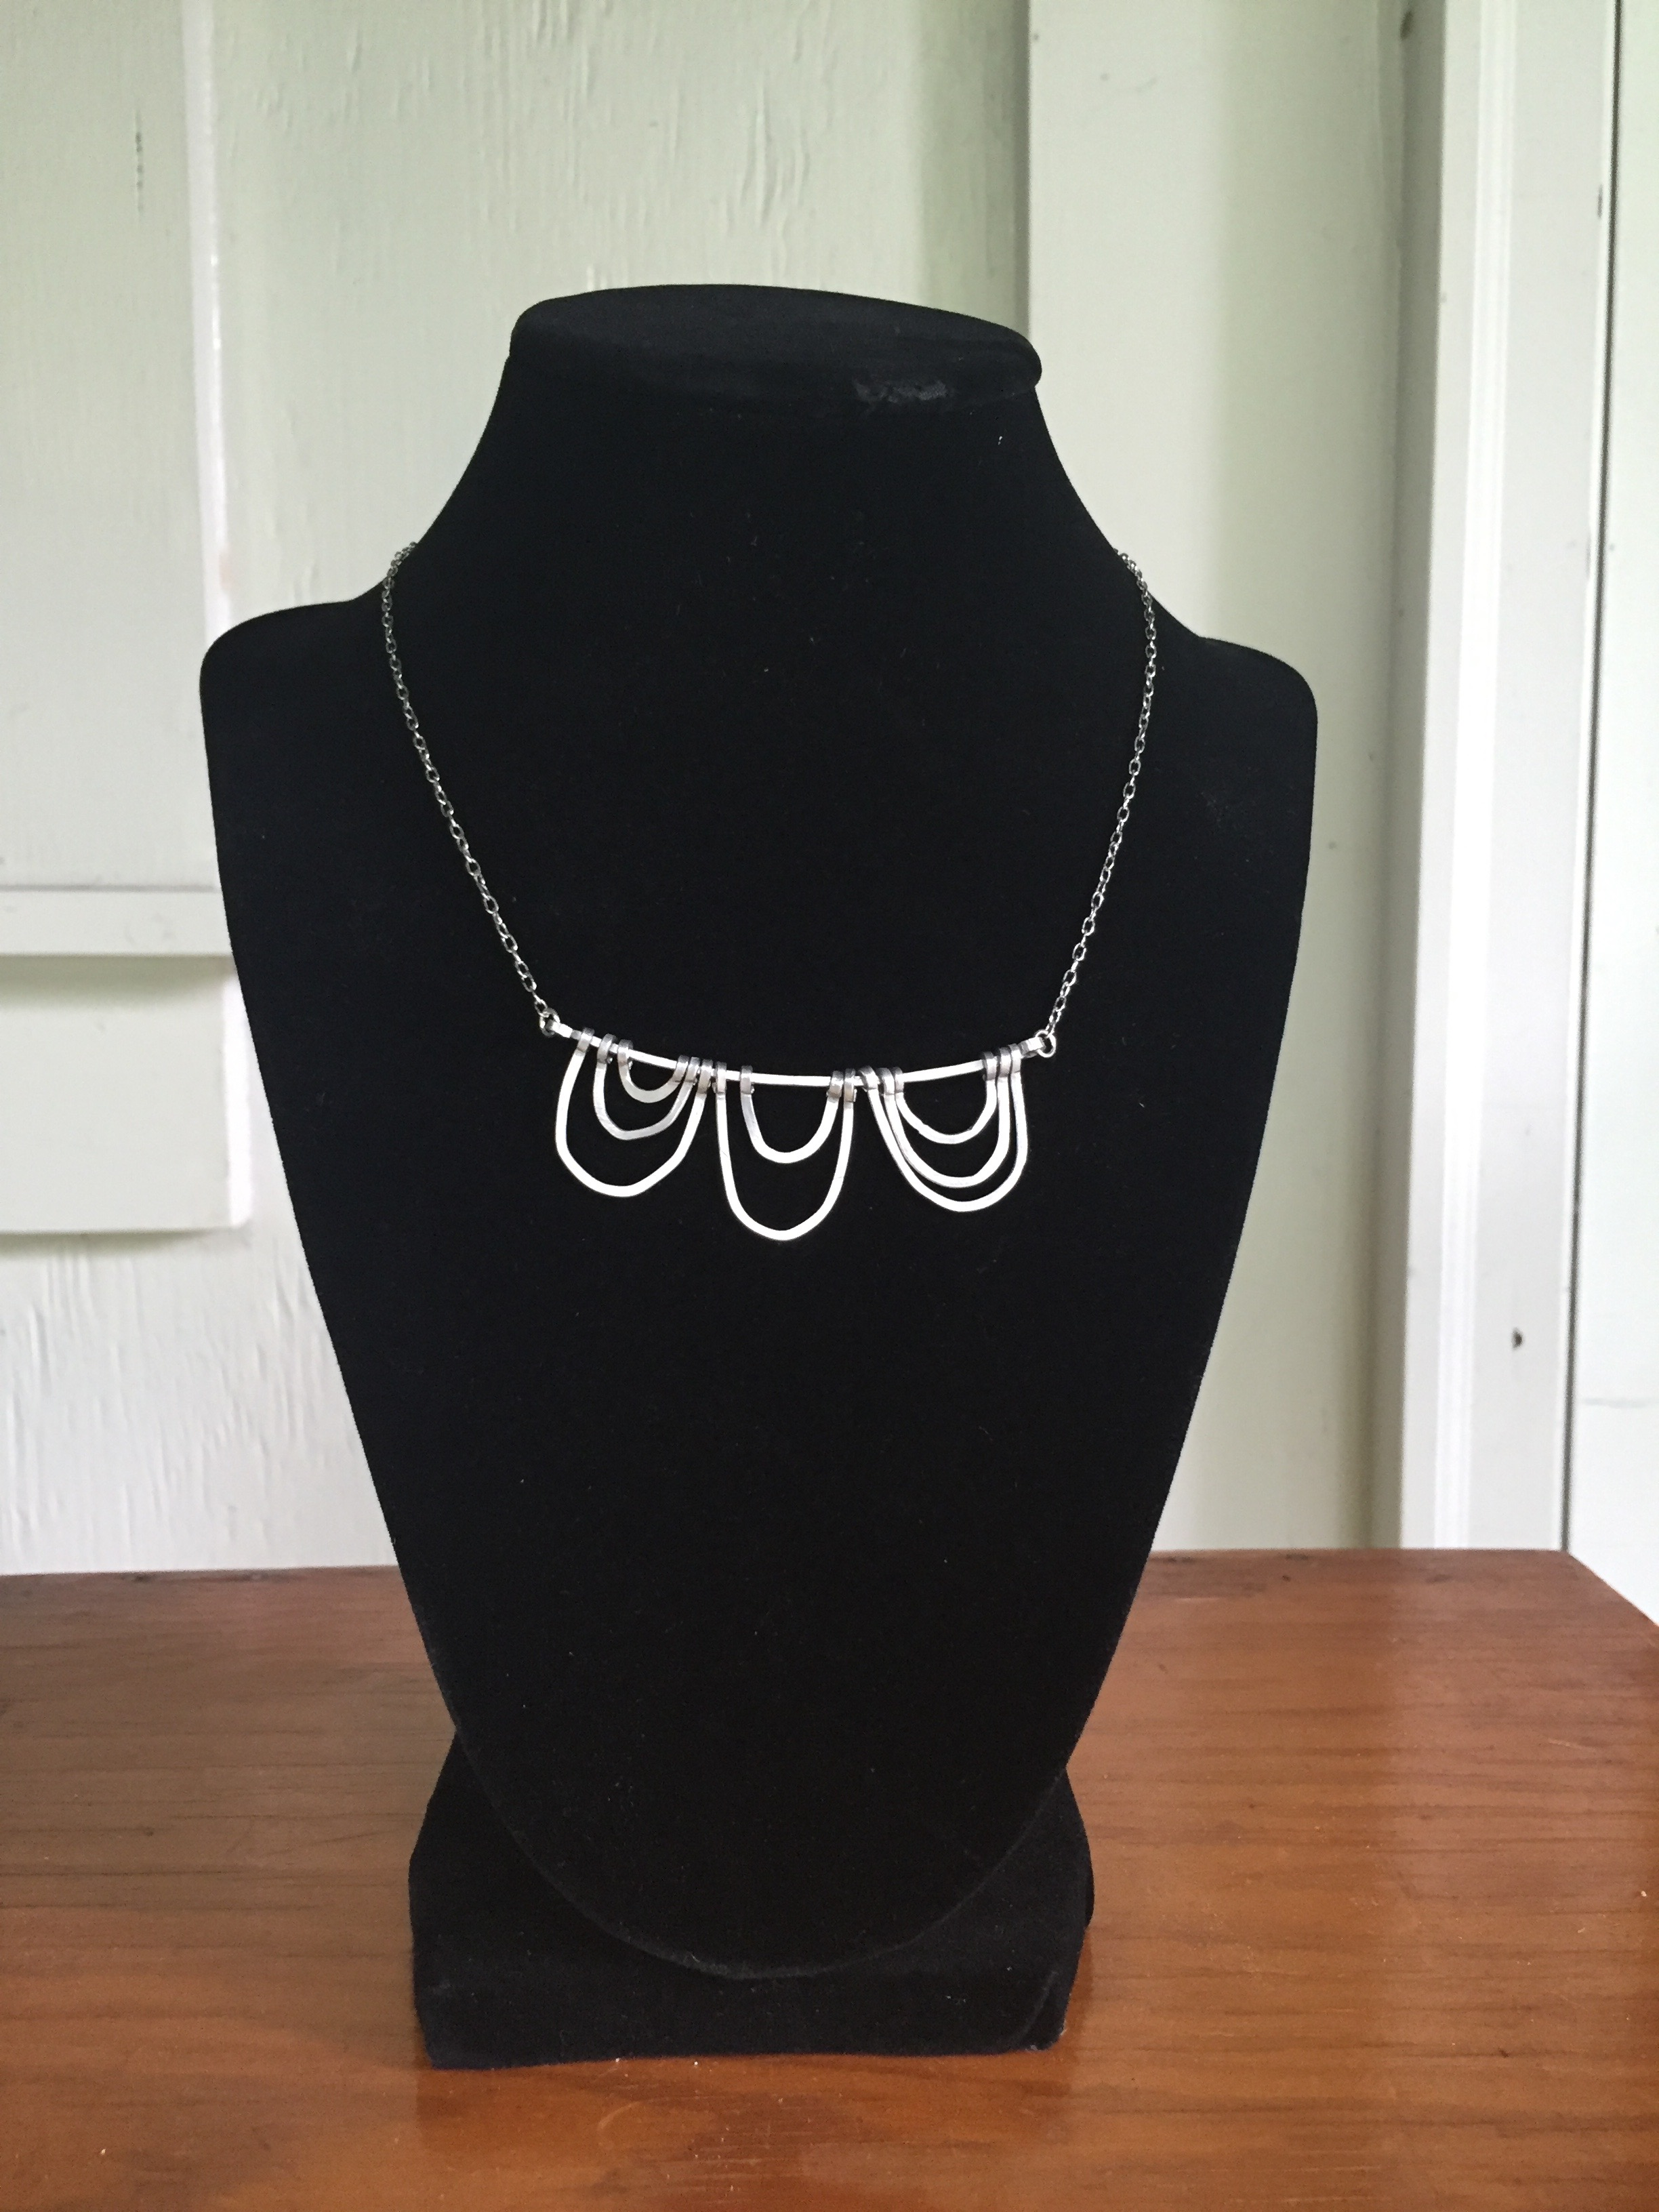 Triple Wave Aluminum Necklace - $40